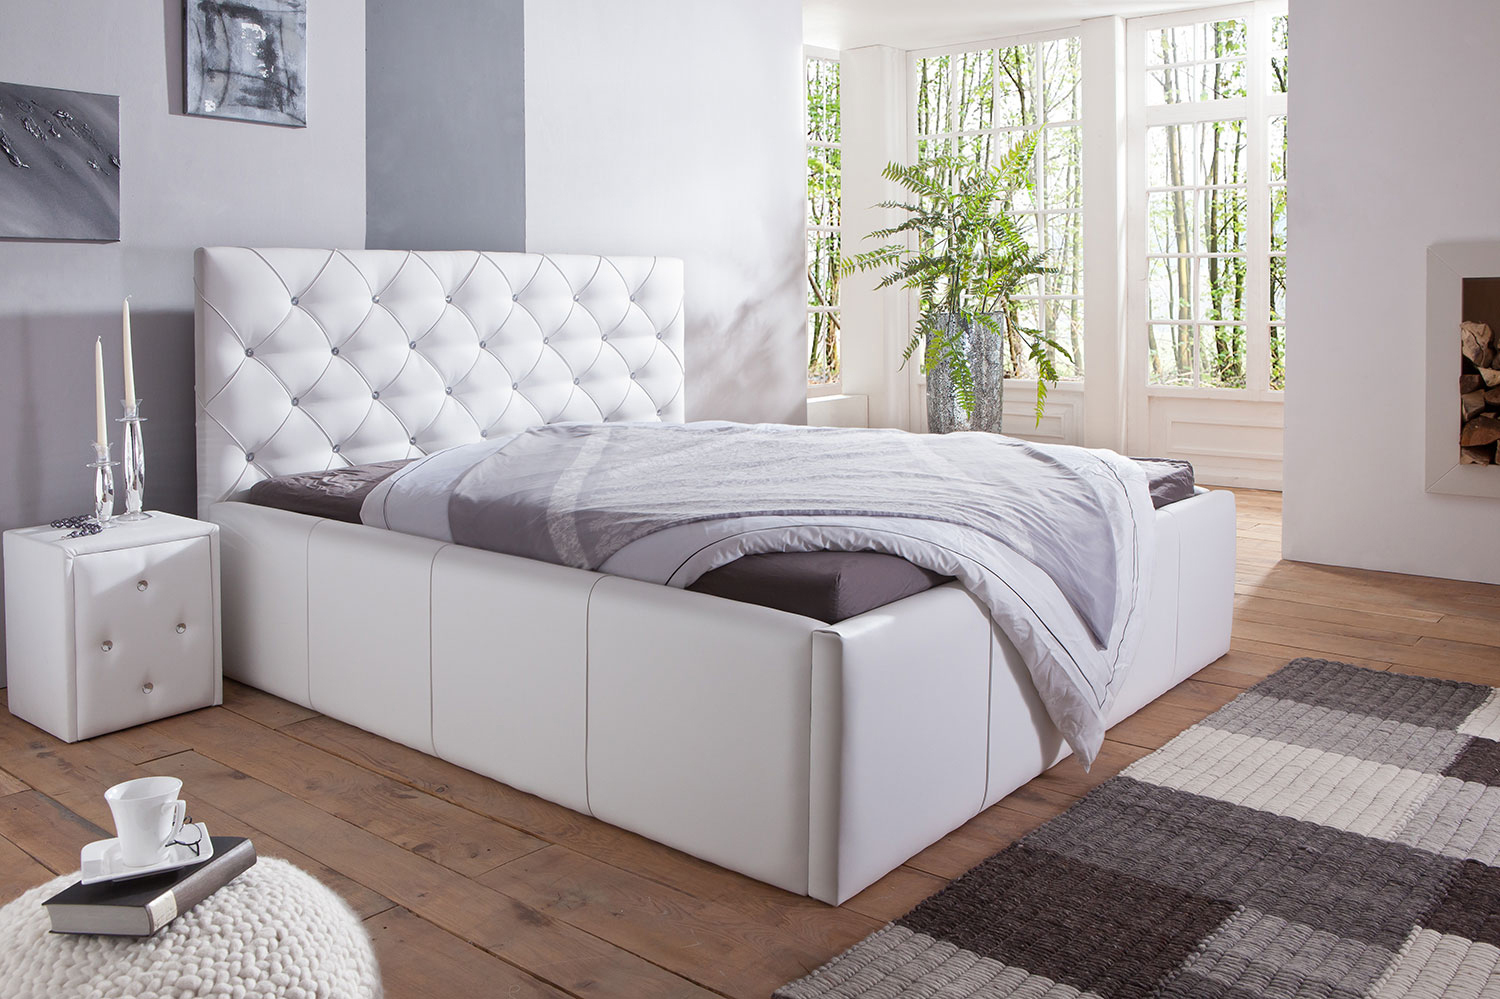 polsterbett kairo mit bettkasten 140x200 160x200 180x200 200x200 ebay. Black Bedroom Furniture Sets. Home Design Ideas